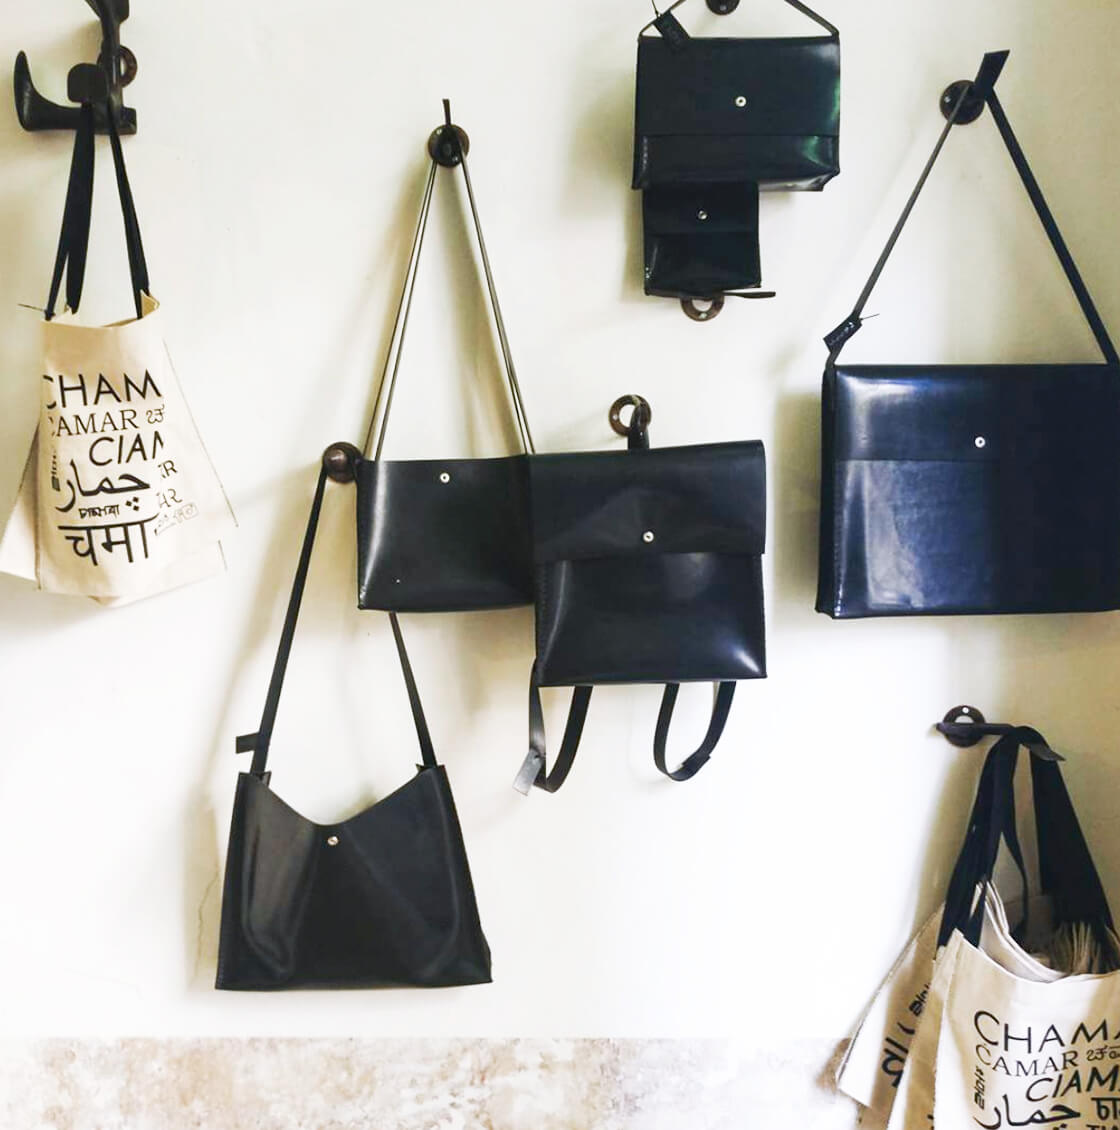 Different bags made from recycled car tyres displayed on the wall at Clarke House Collective in Mumbai, India. They are from the brand Chamar Studio by Sudheer Rajbhar